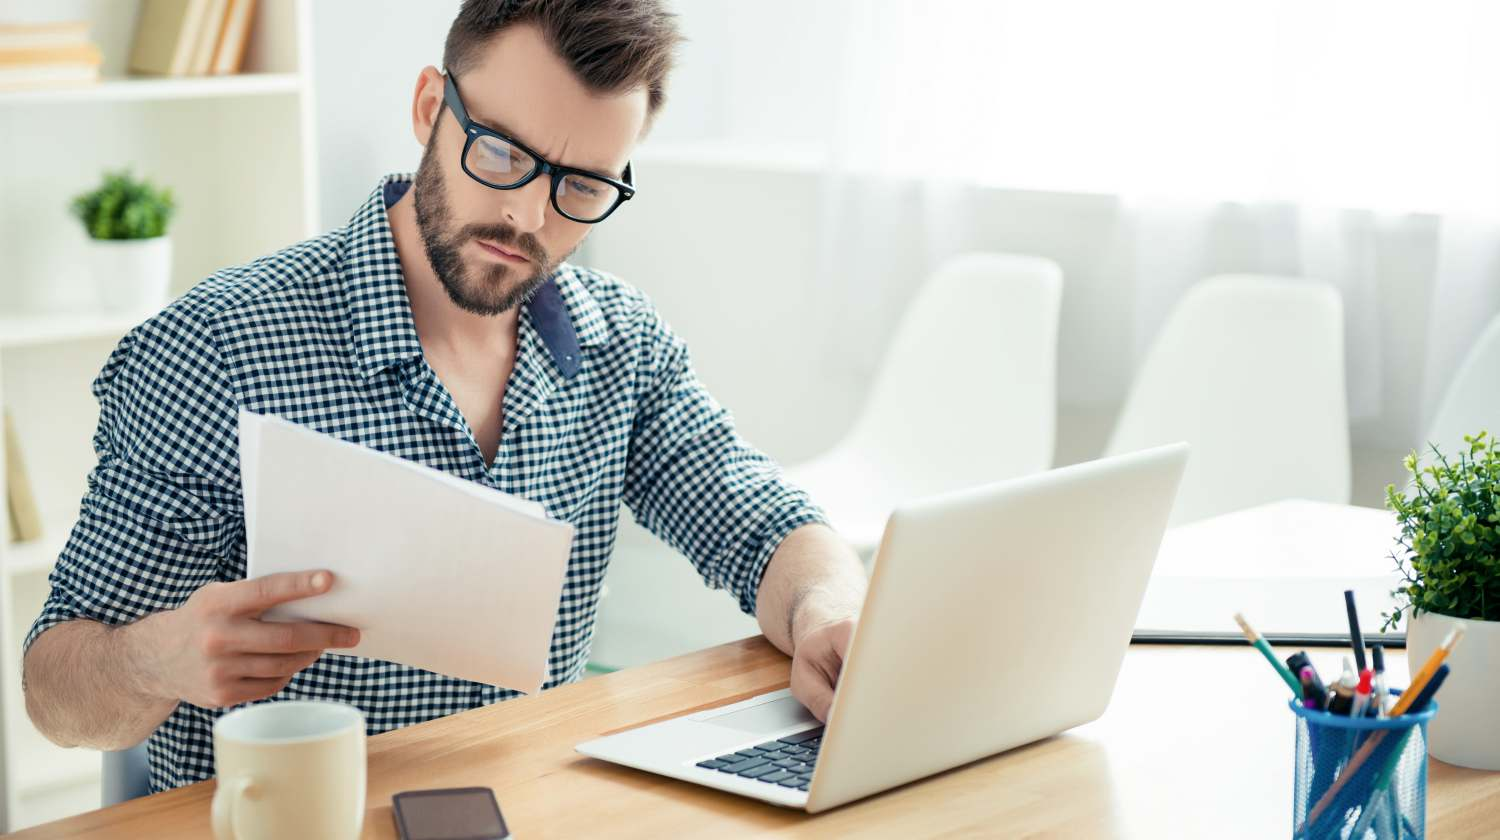 Featured | man reading documents | How To Avoid Taxes On IRA Withdrawals Inside Your IRA | ira withdrawals | avoiding taxes on ira withdrawals